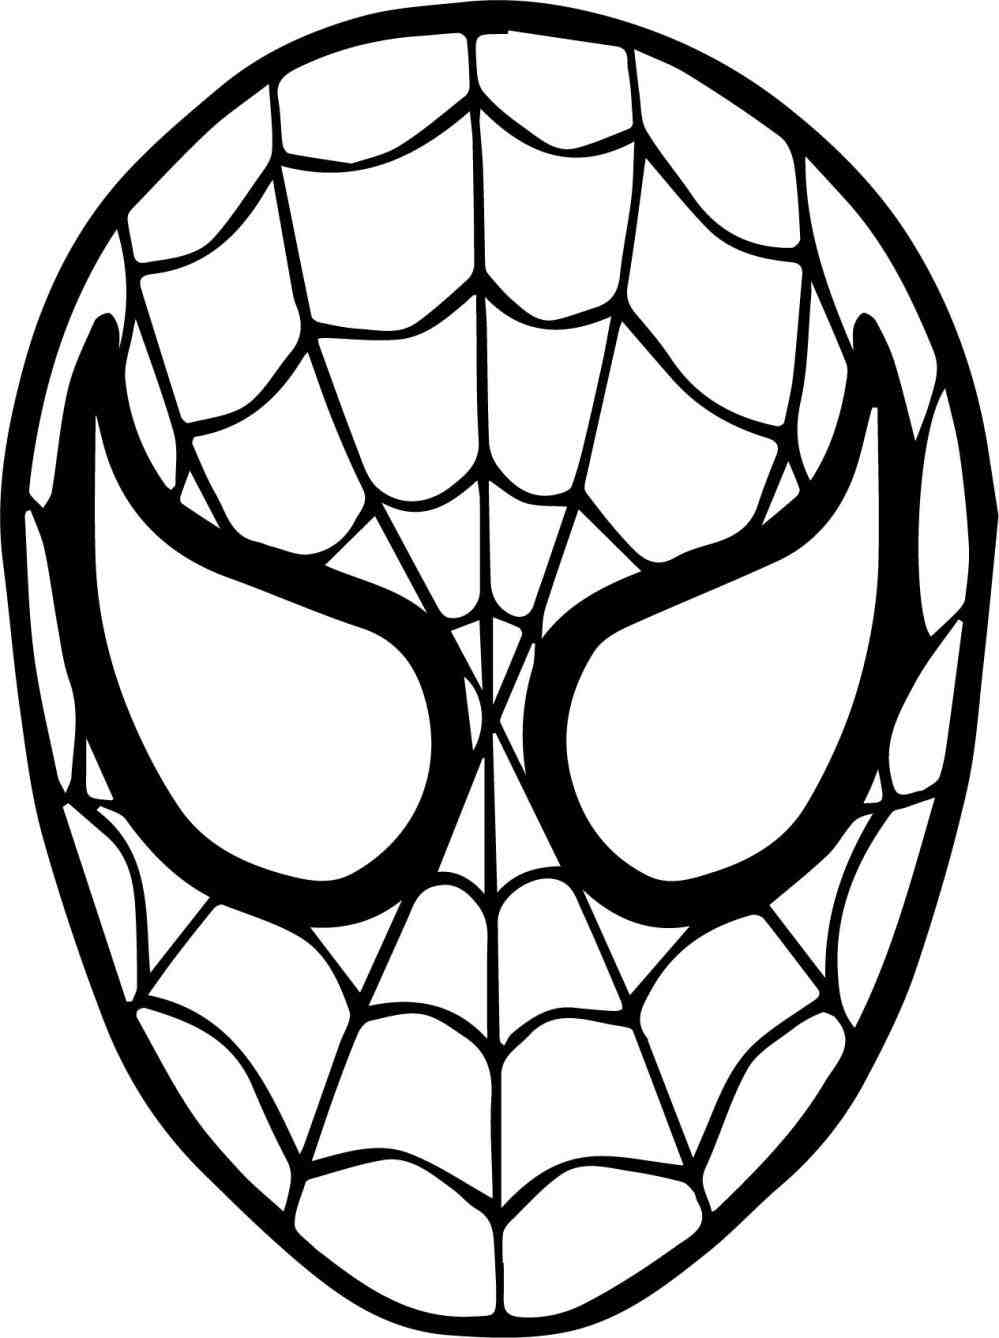 Spiderman Clipart Black And White Free Download Best Spiderman